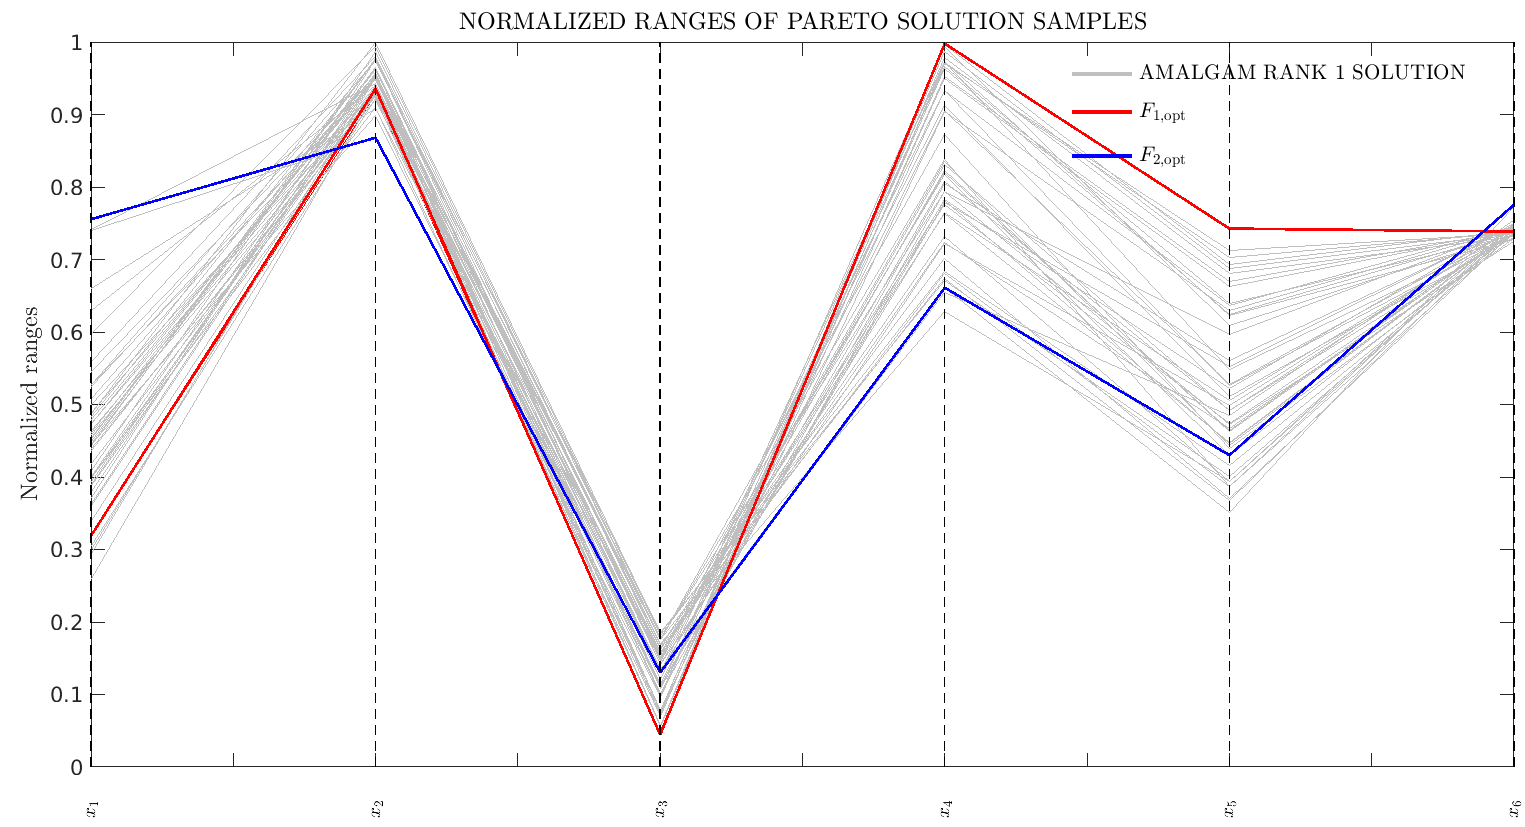 Figure 3: Example of optimum solution spread across paramater values